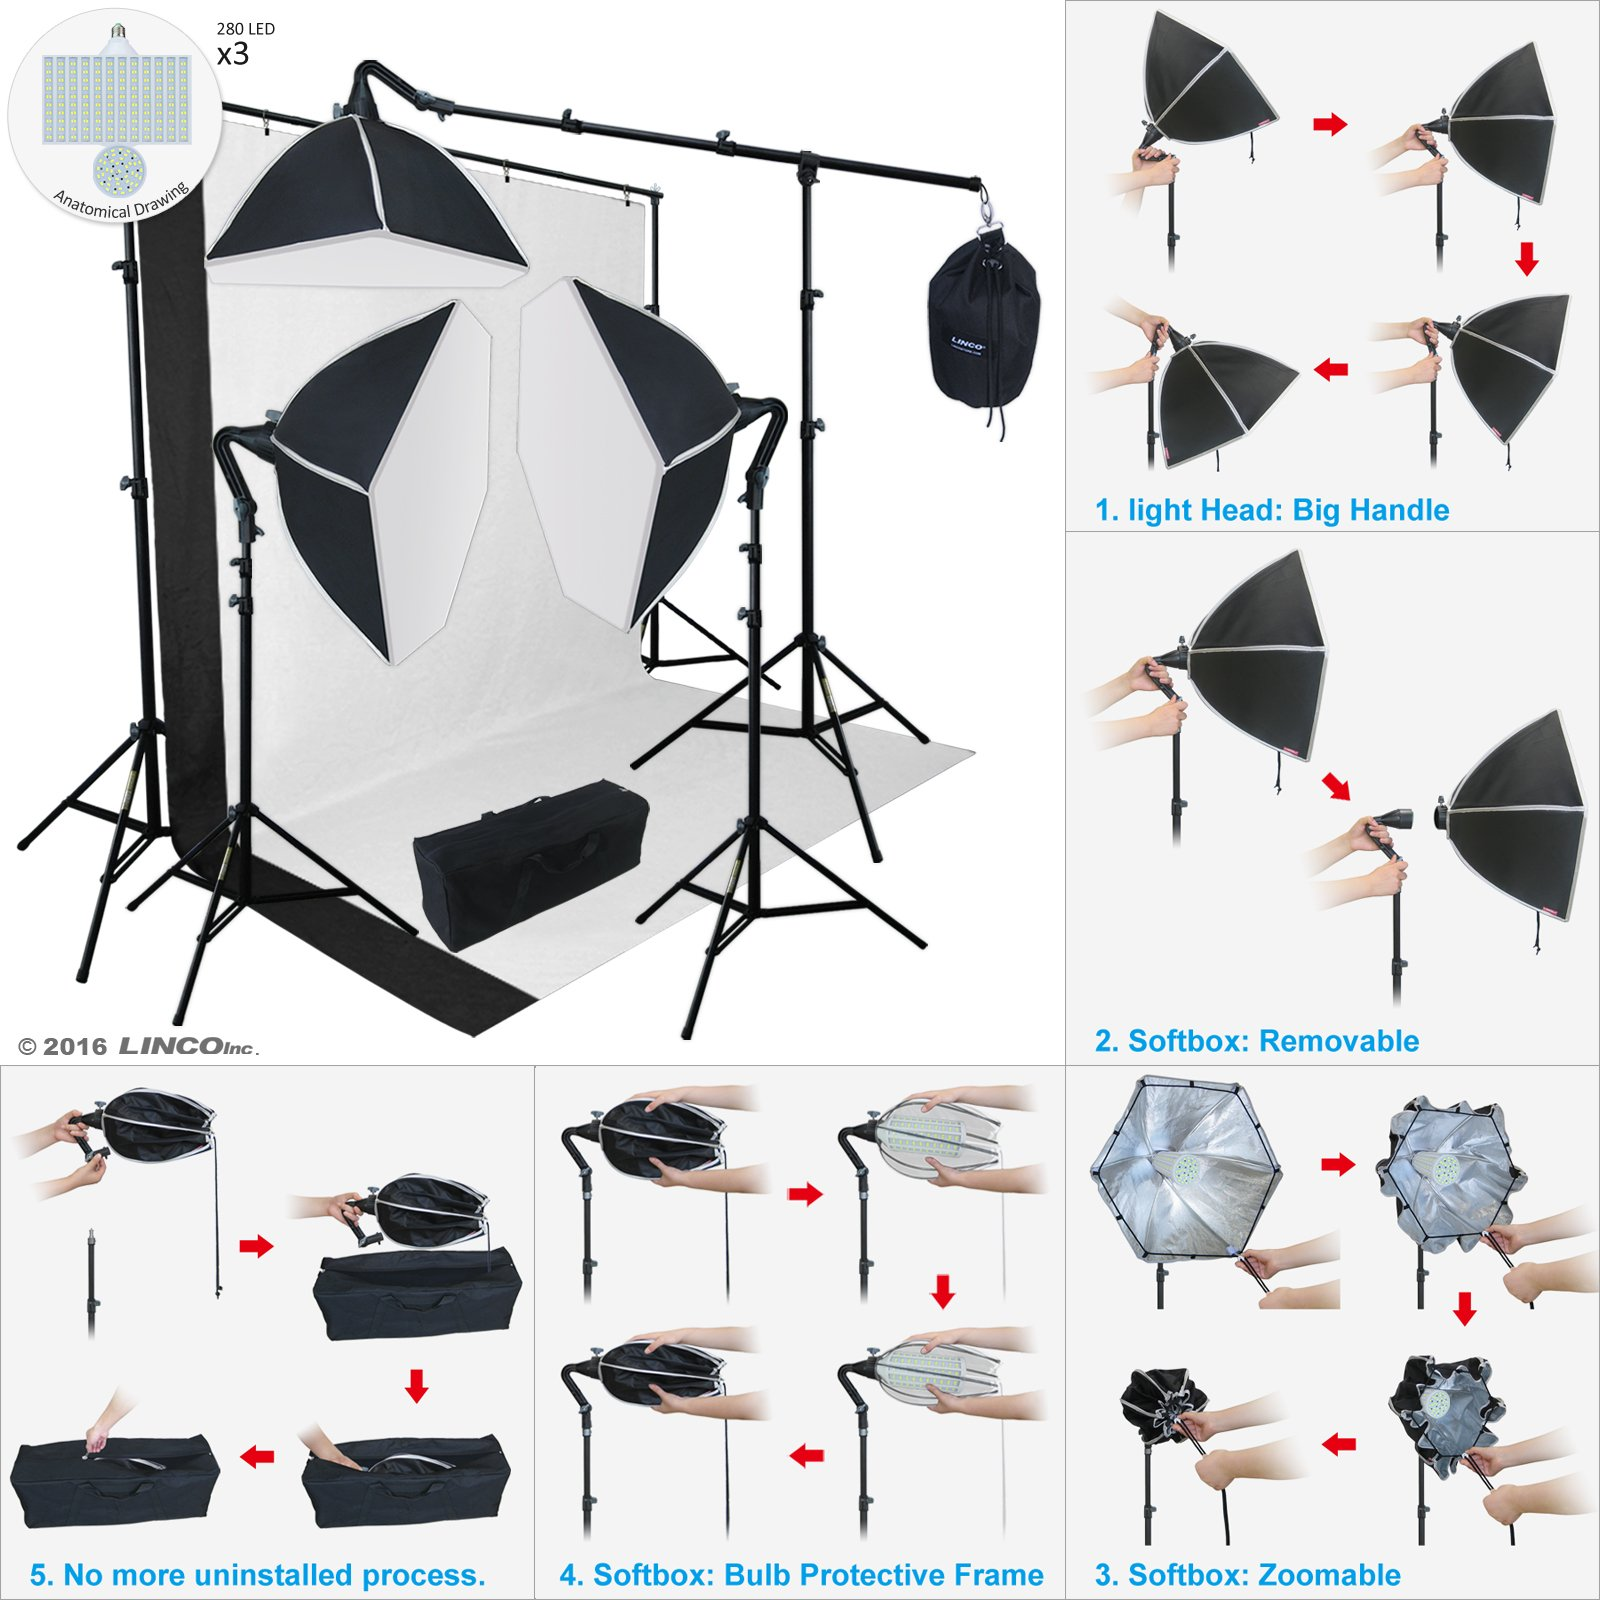 LINCO Lincostore Morning Glory Softbox Studio Lighting Kit 840 LED AM151- Perfect Effect and No Uninstalled Process by Linco